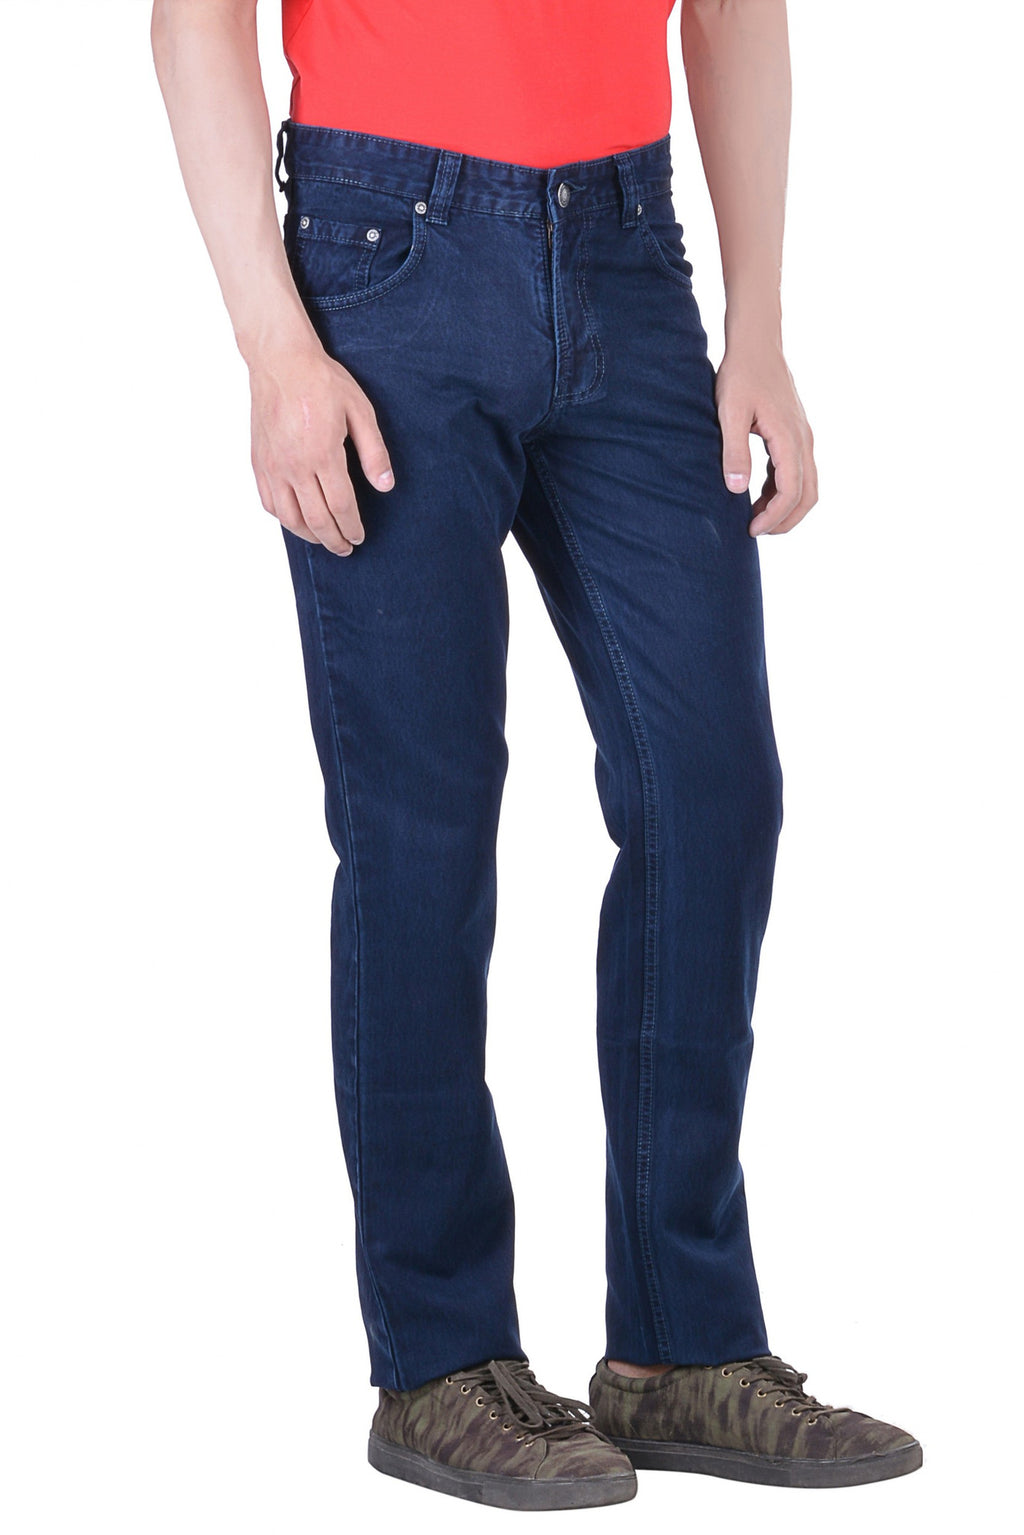 Hoffmen Saphire Blue Regular Fit Silky Denim SDG2116